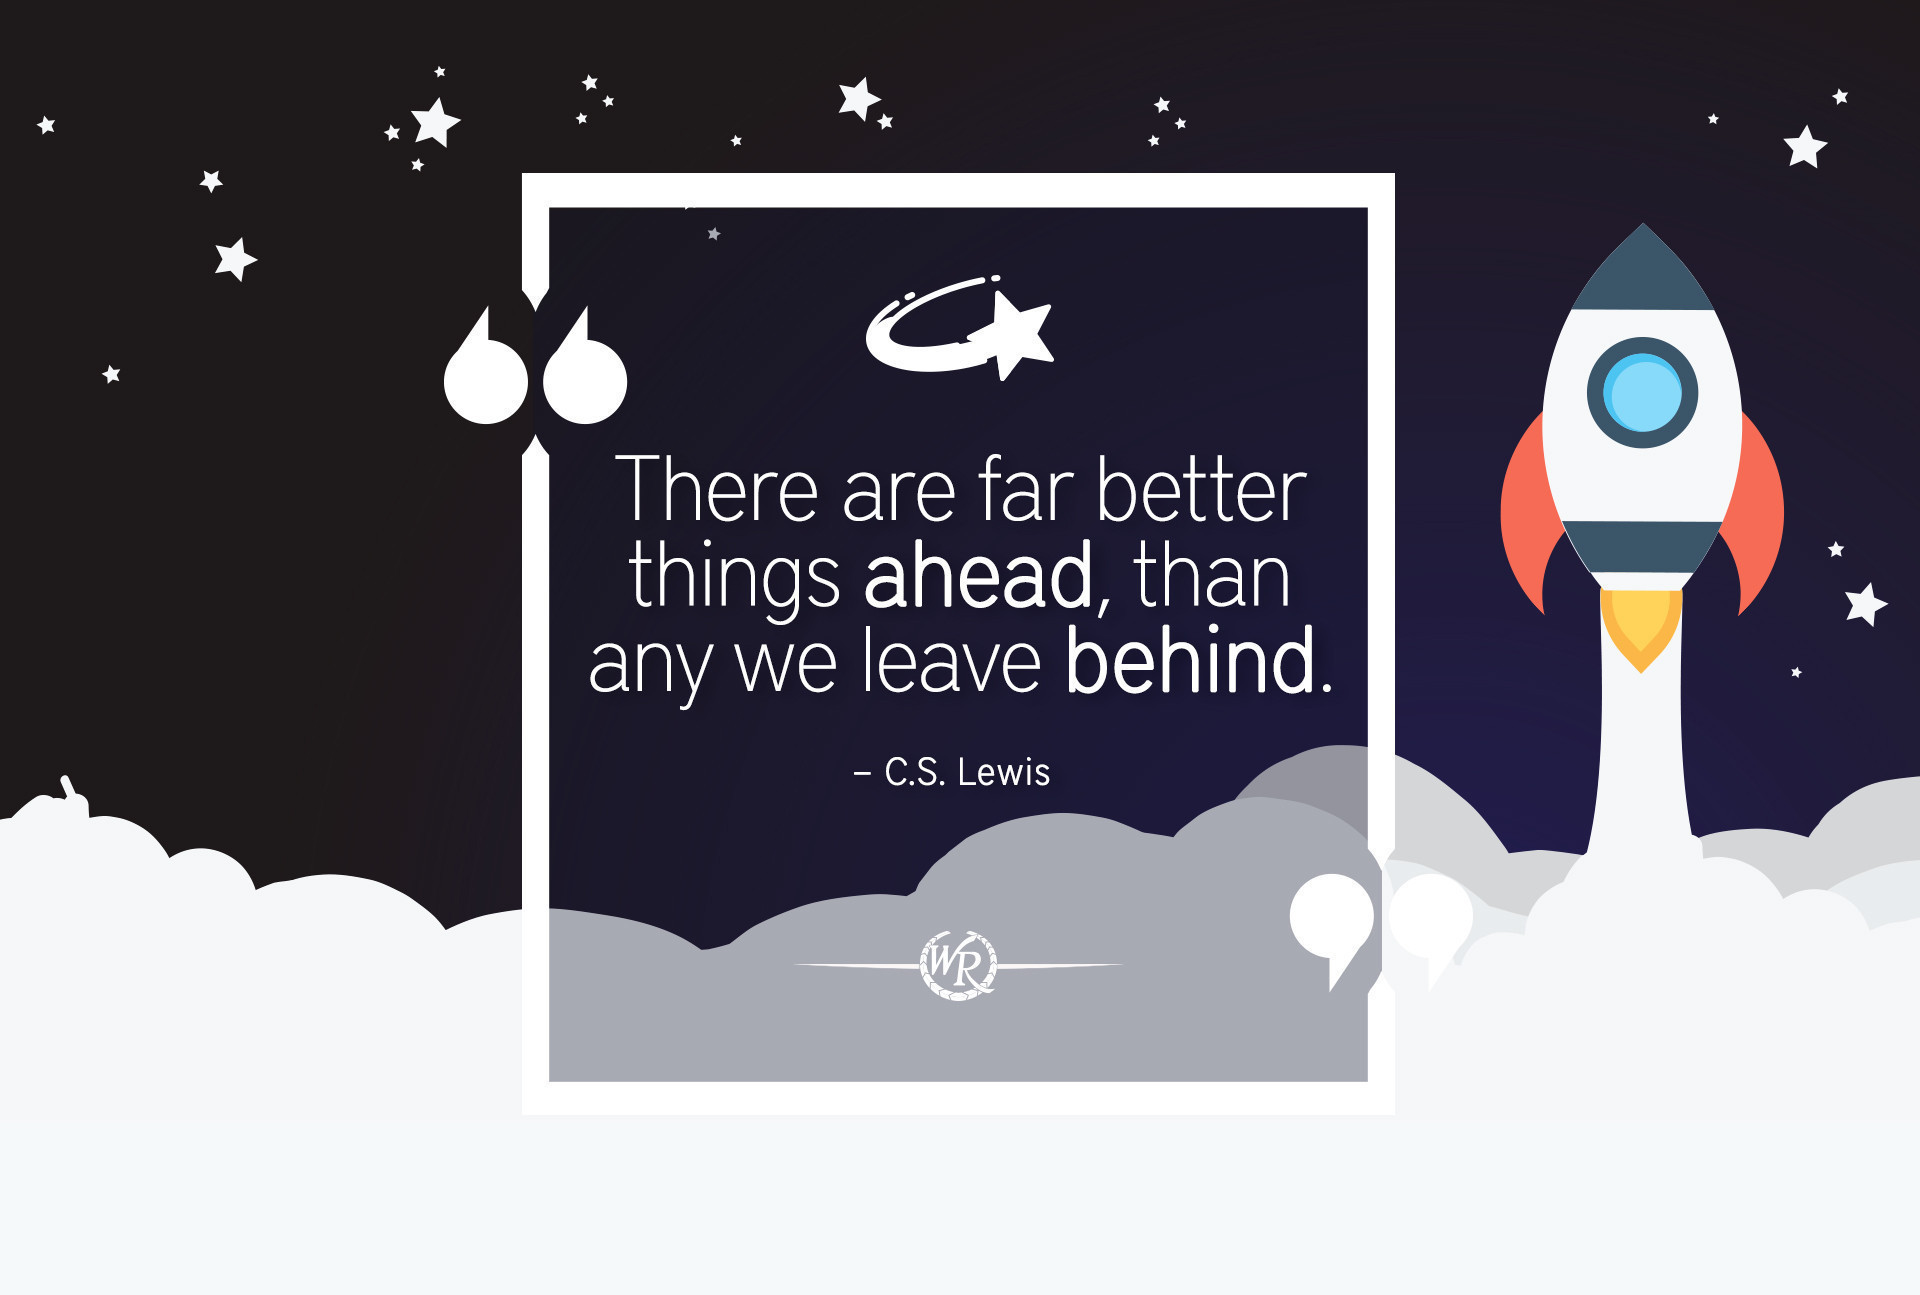 There are far better things ahead, than any we leave behind | Quotes by C.S. Lewis | Motivating Quotes About Travel